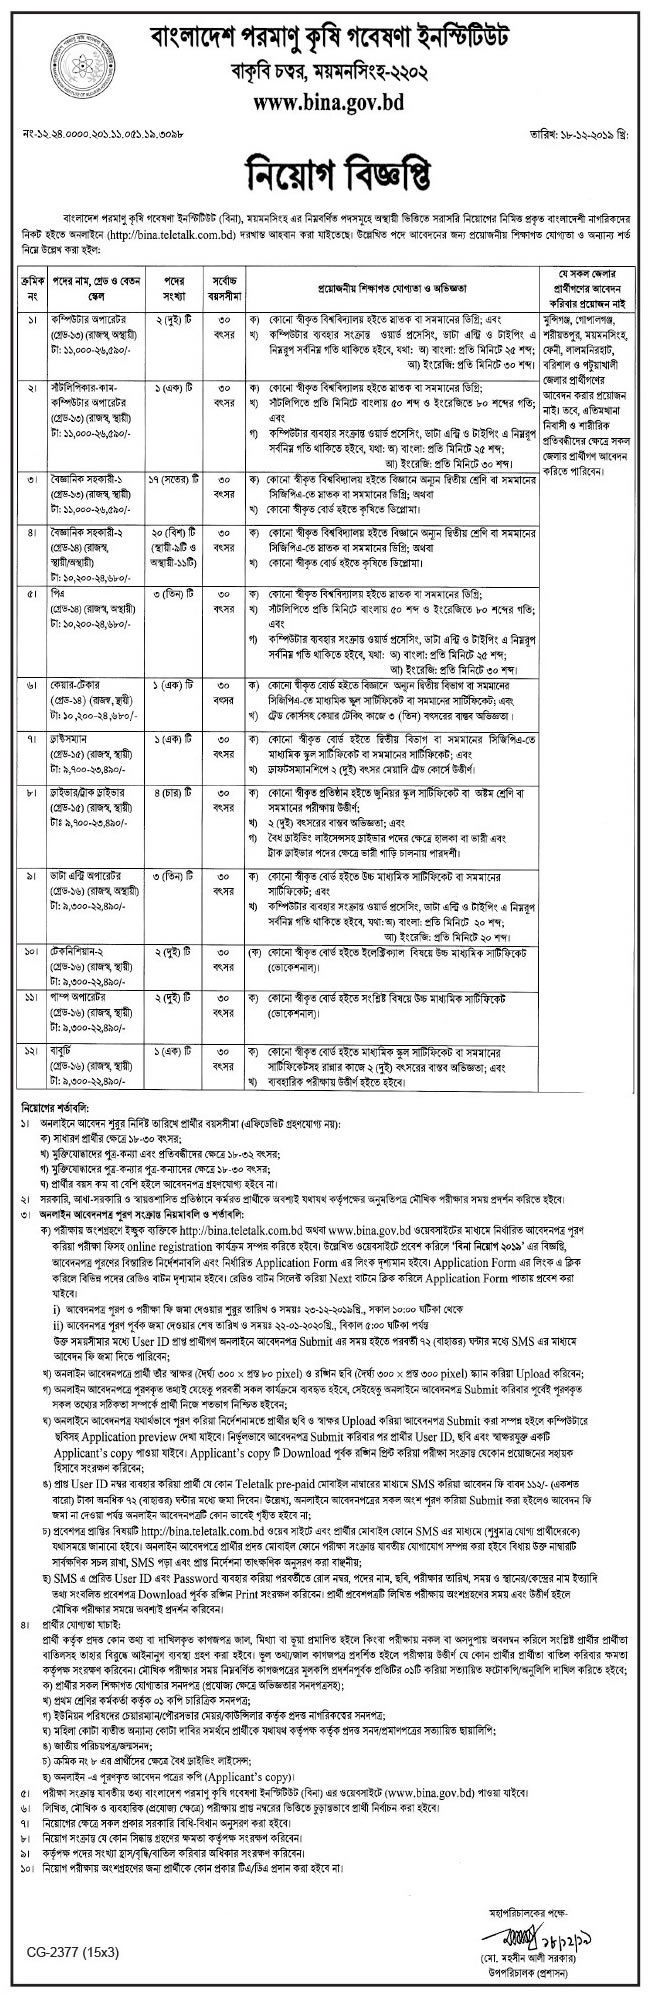 Bangladesh Institute of Nuclear Agriculture Job Circular 2020